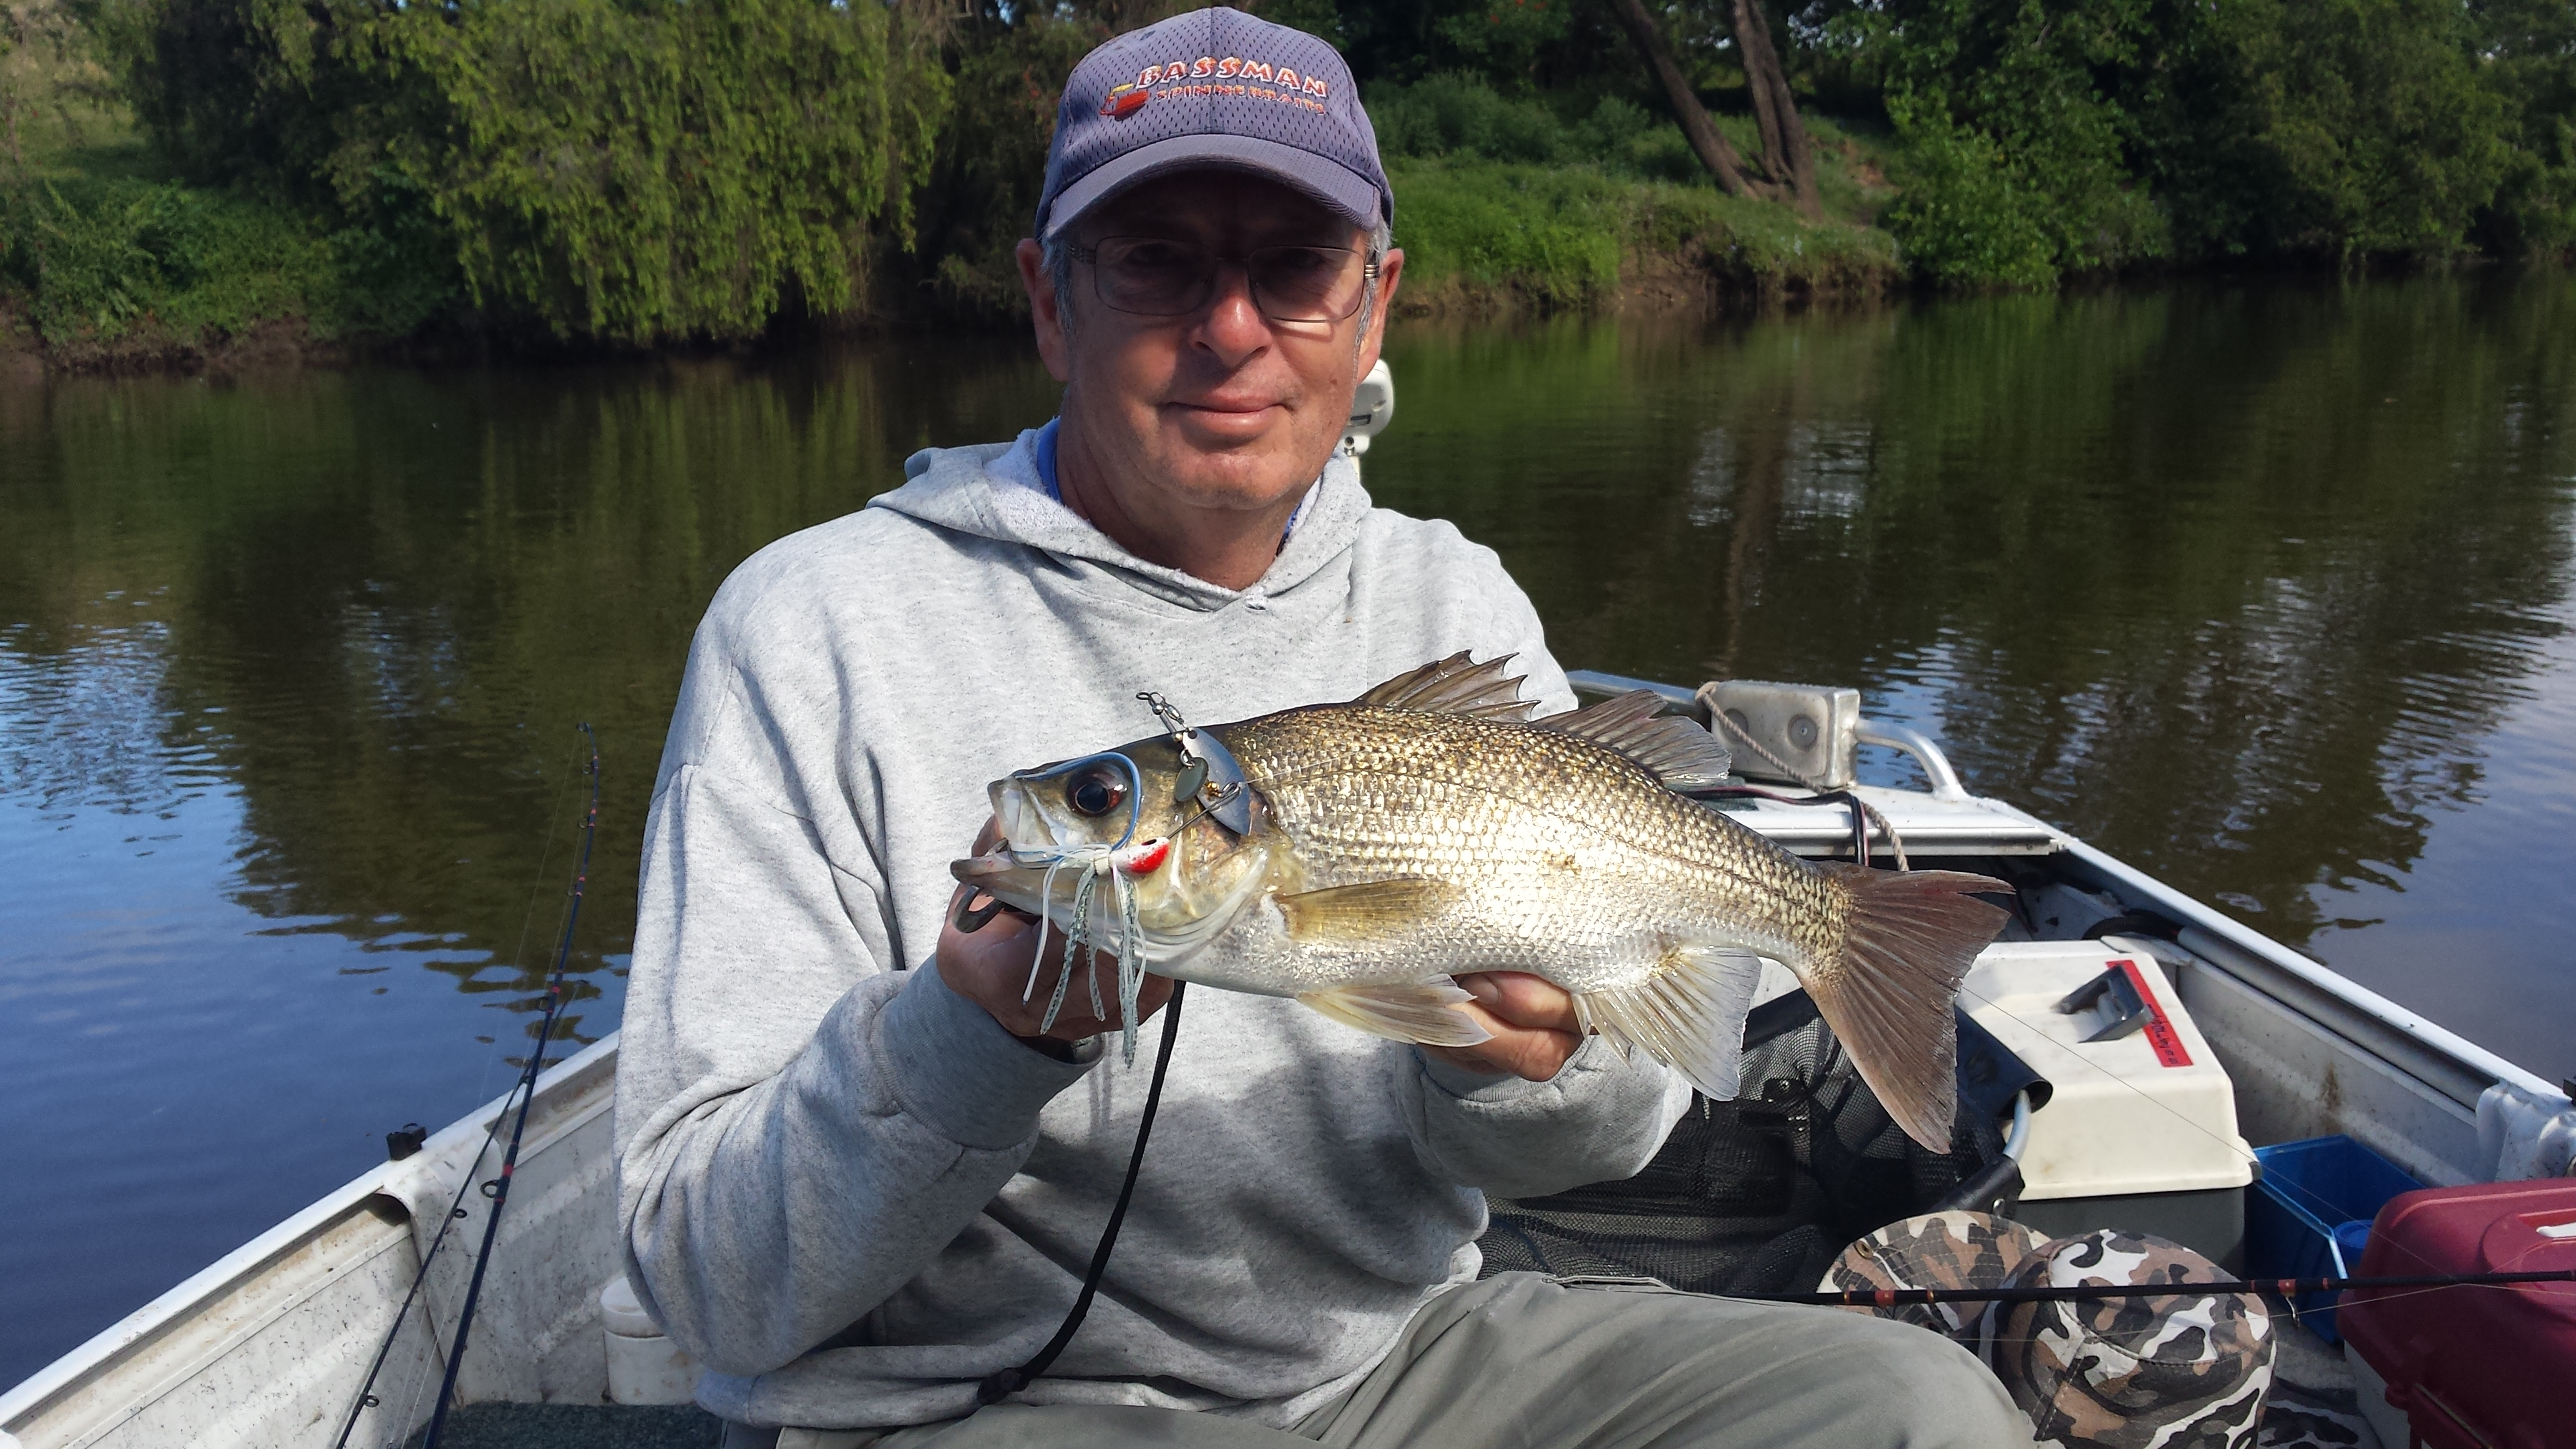 True bass fishing gentleman Hans Jensen sadly passed away recently. His amiable nature and fishing nous will be missed by many.